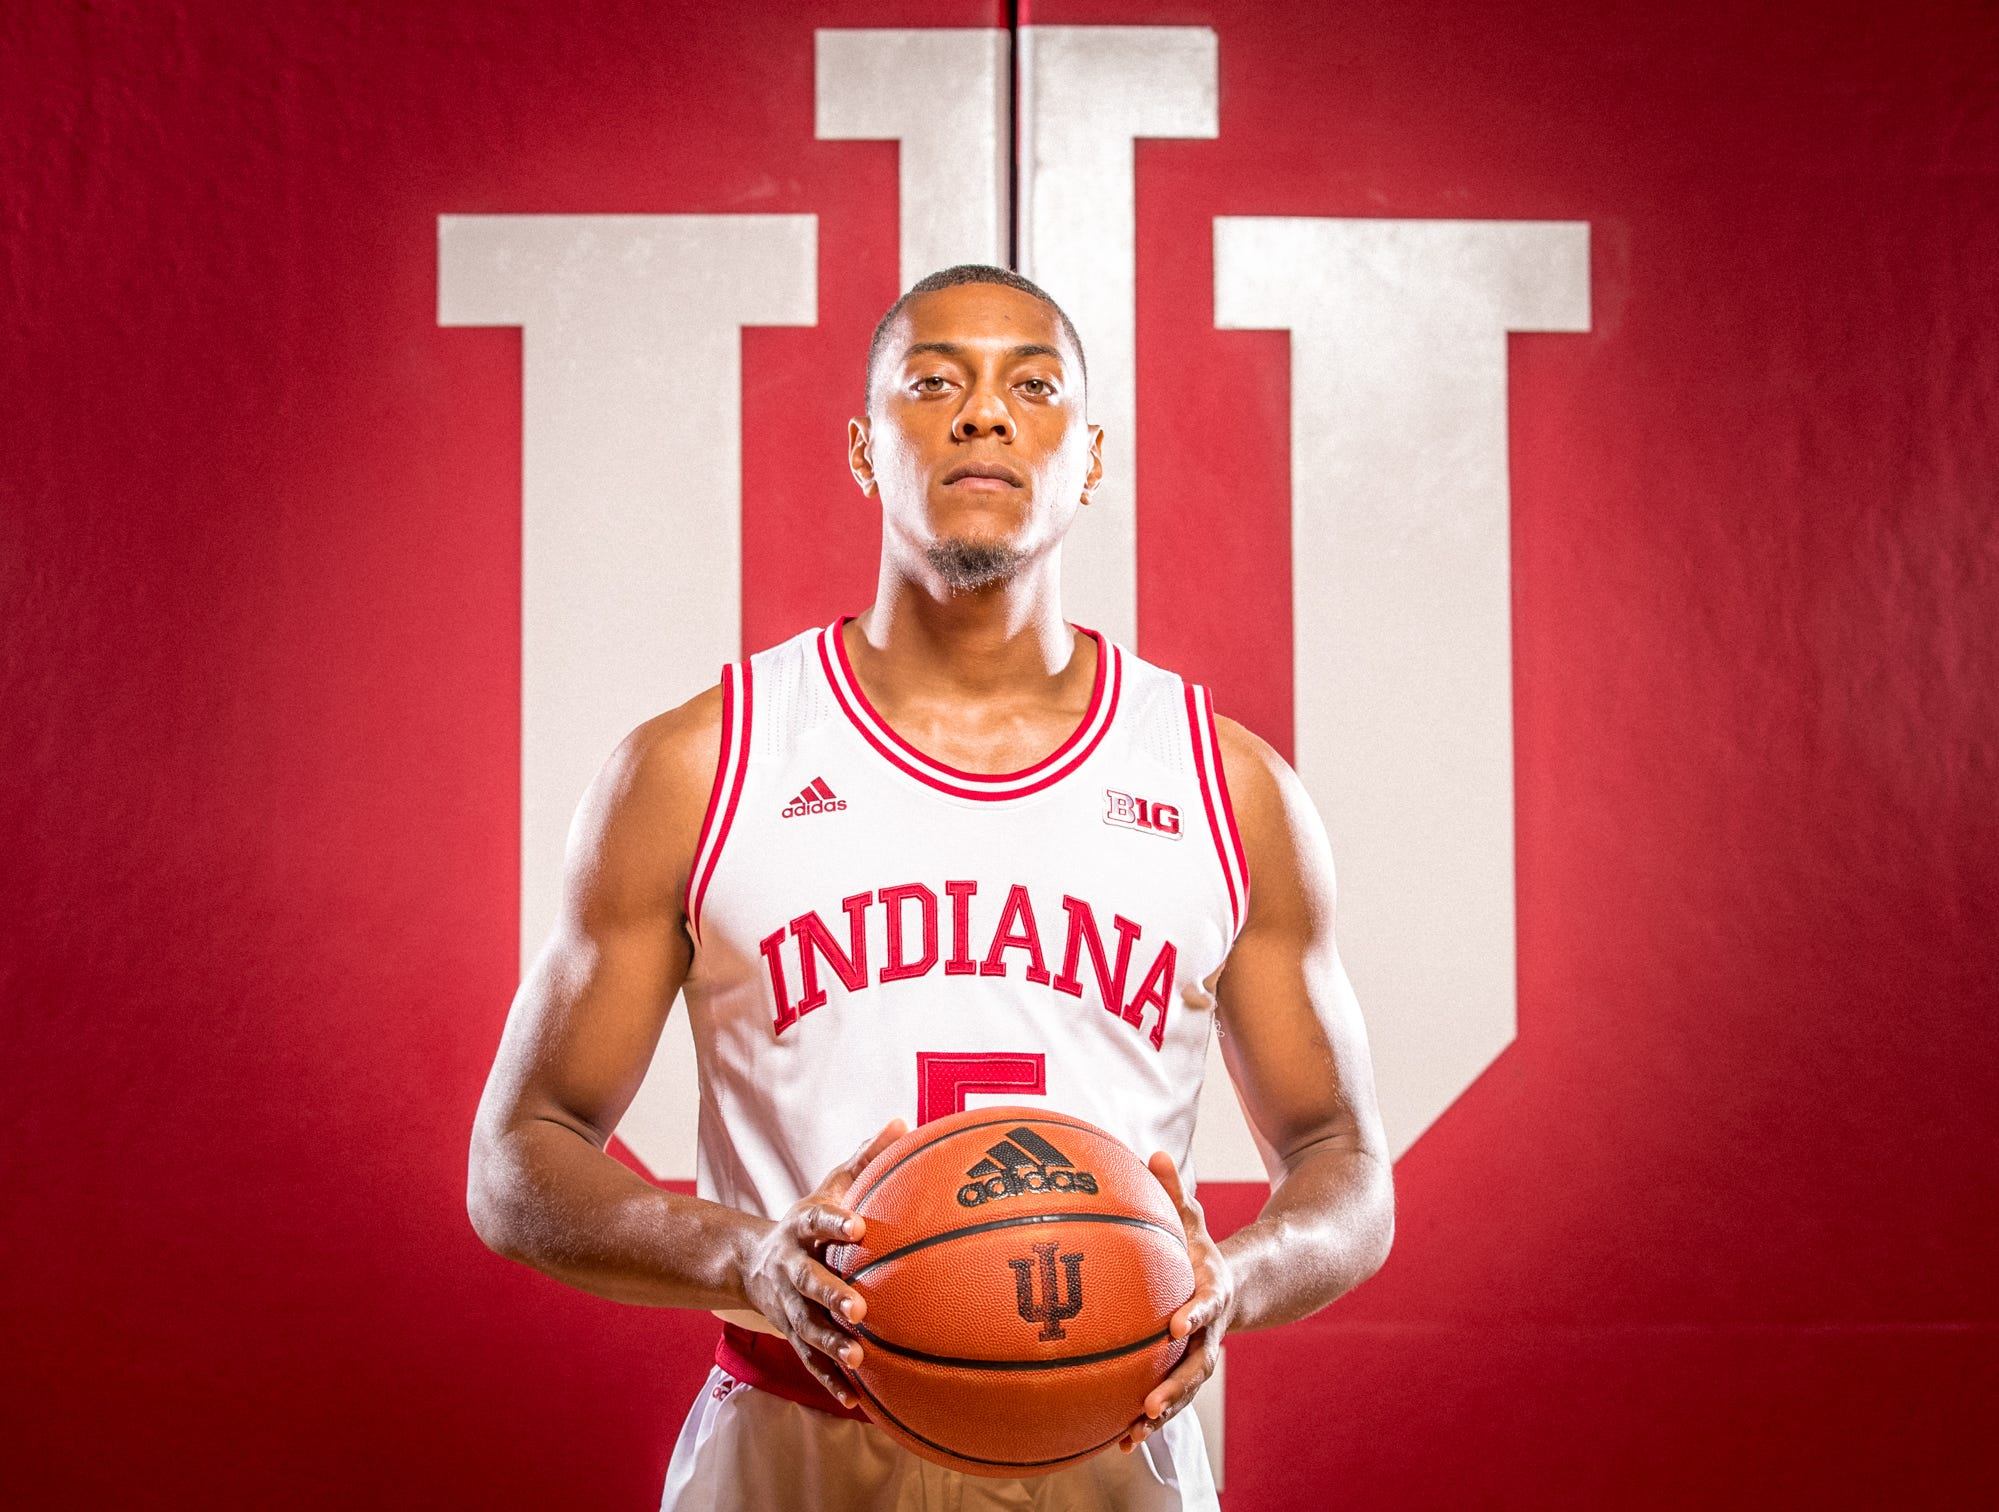 Quentin Taylor is photographed during Indiana University Media Day at Simon Skjodt Assembly Hall on Wednesday, Sept. 26, 2018.